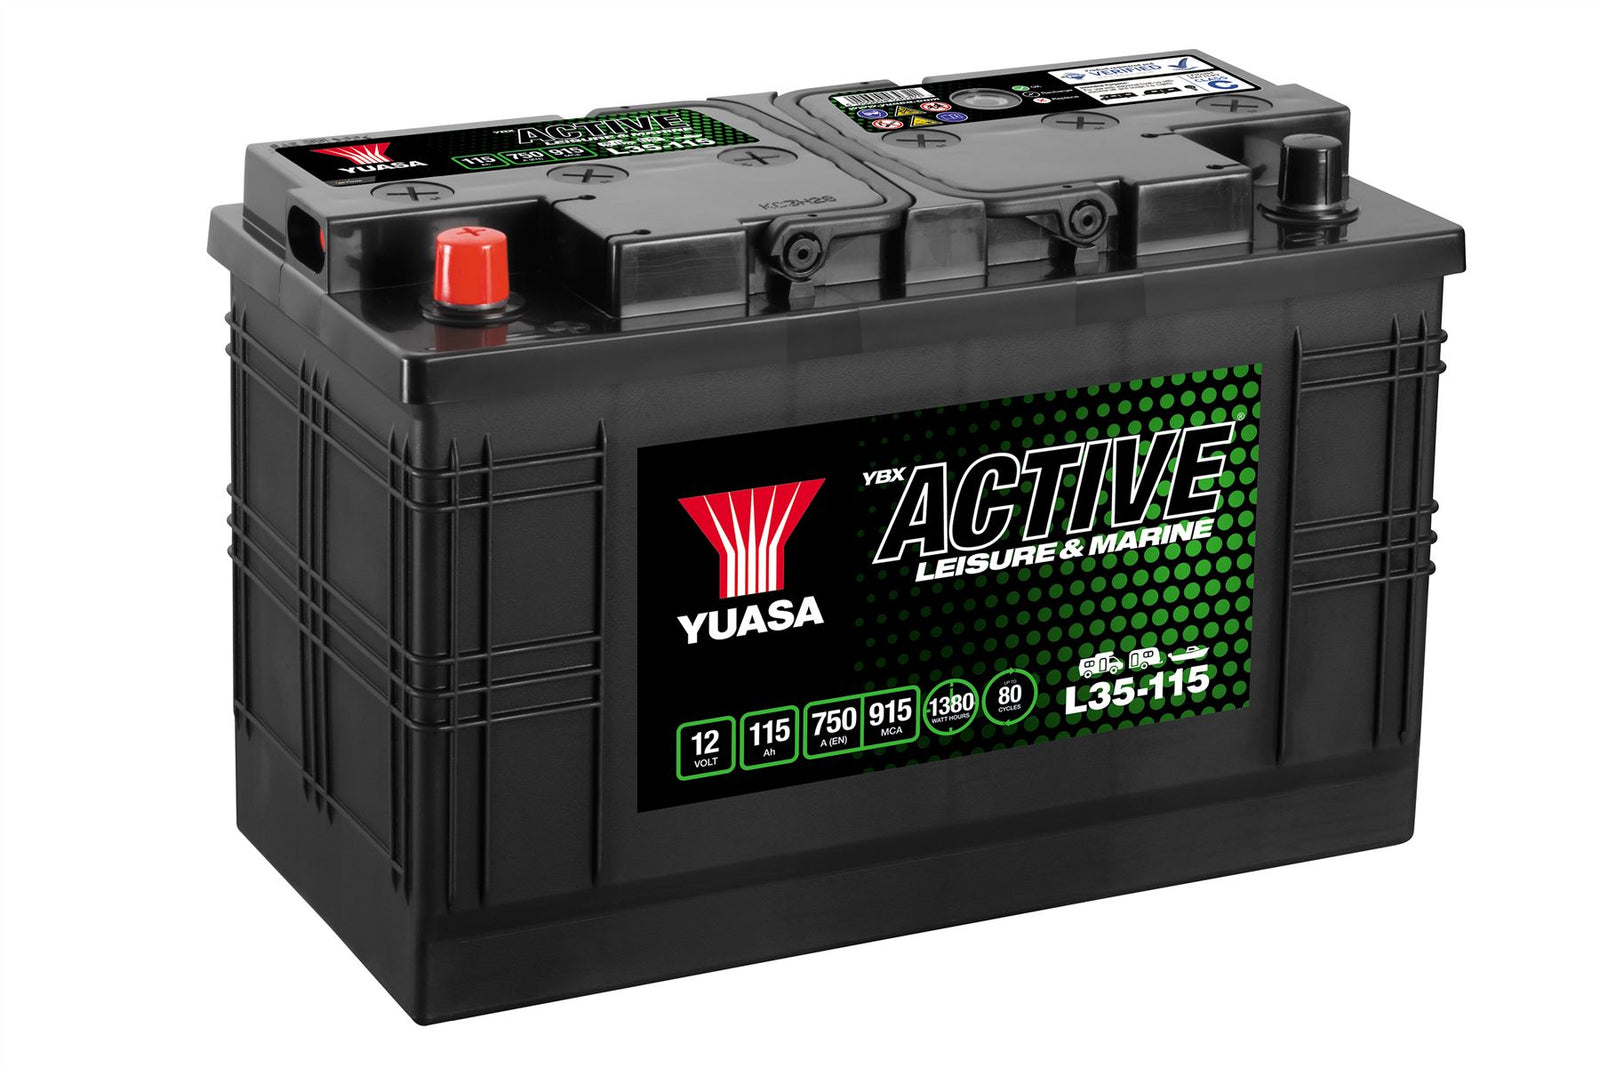 Yuasa L35-115 Active Leisure & Marine Battery